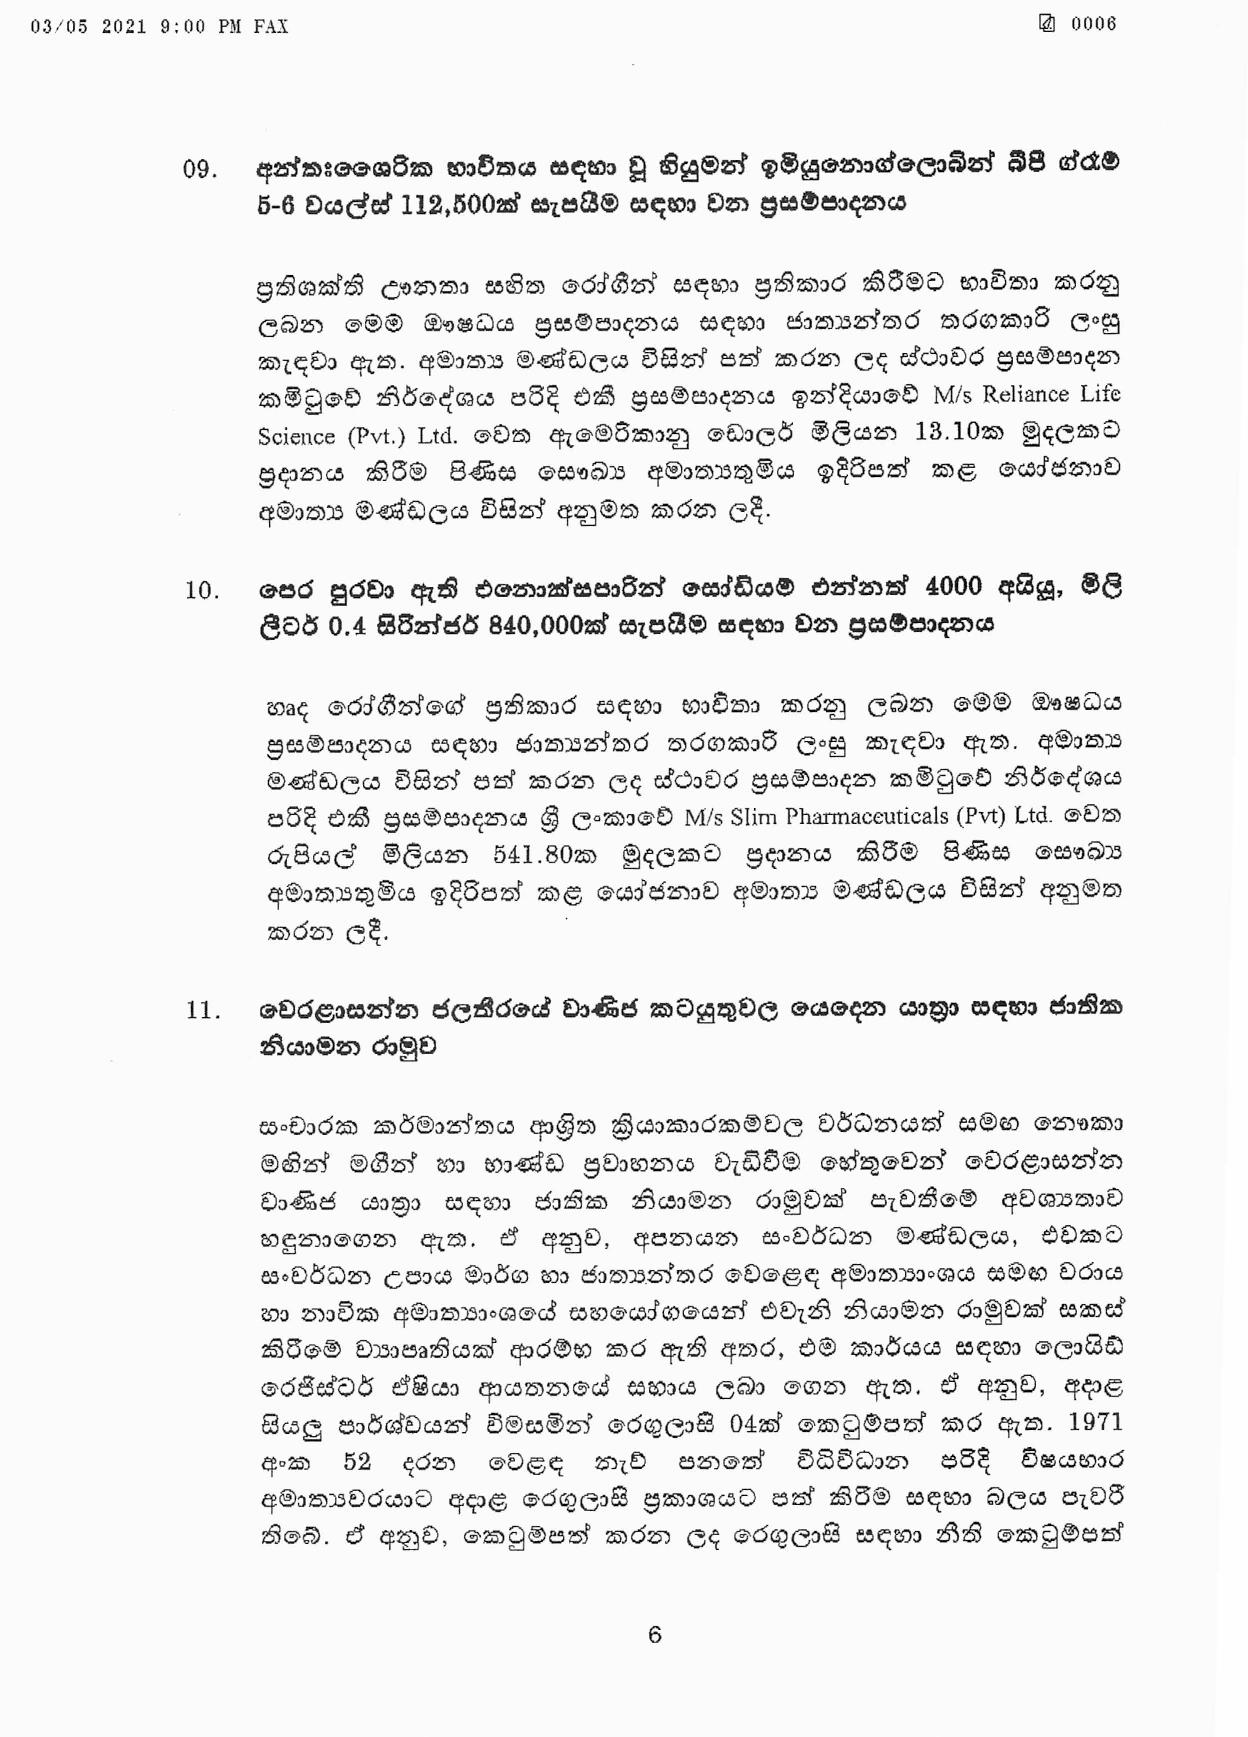 Cabinet Decision on 03.05.2021 page 006